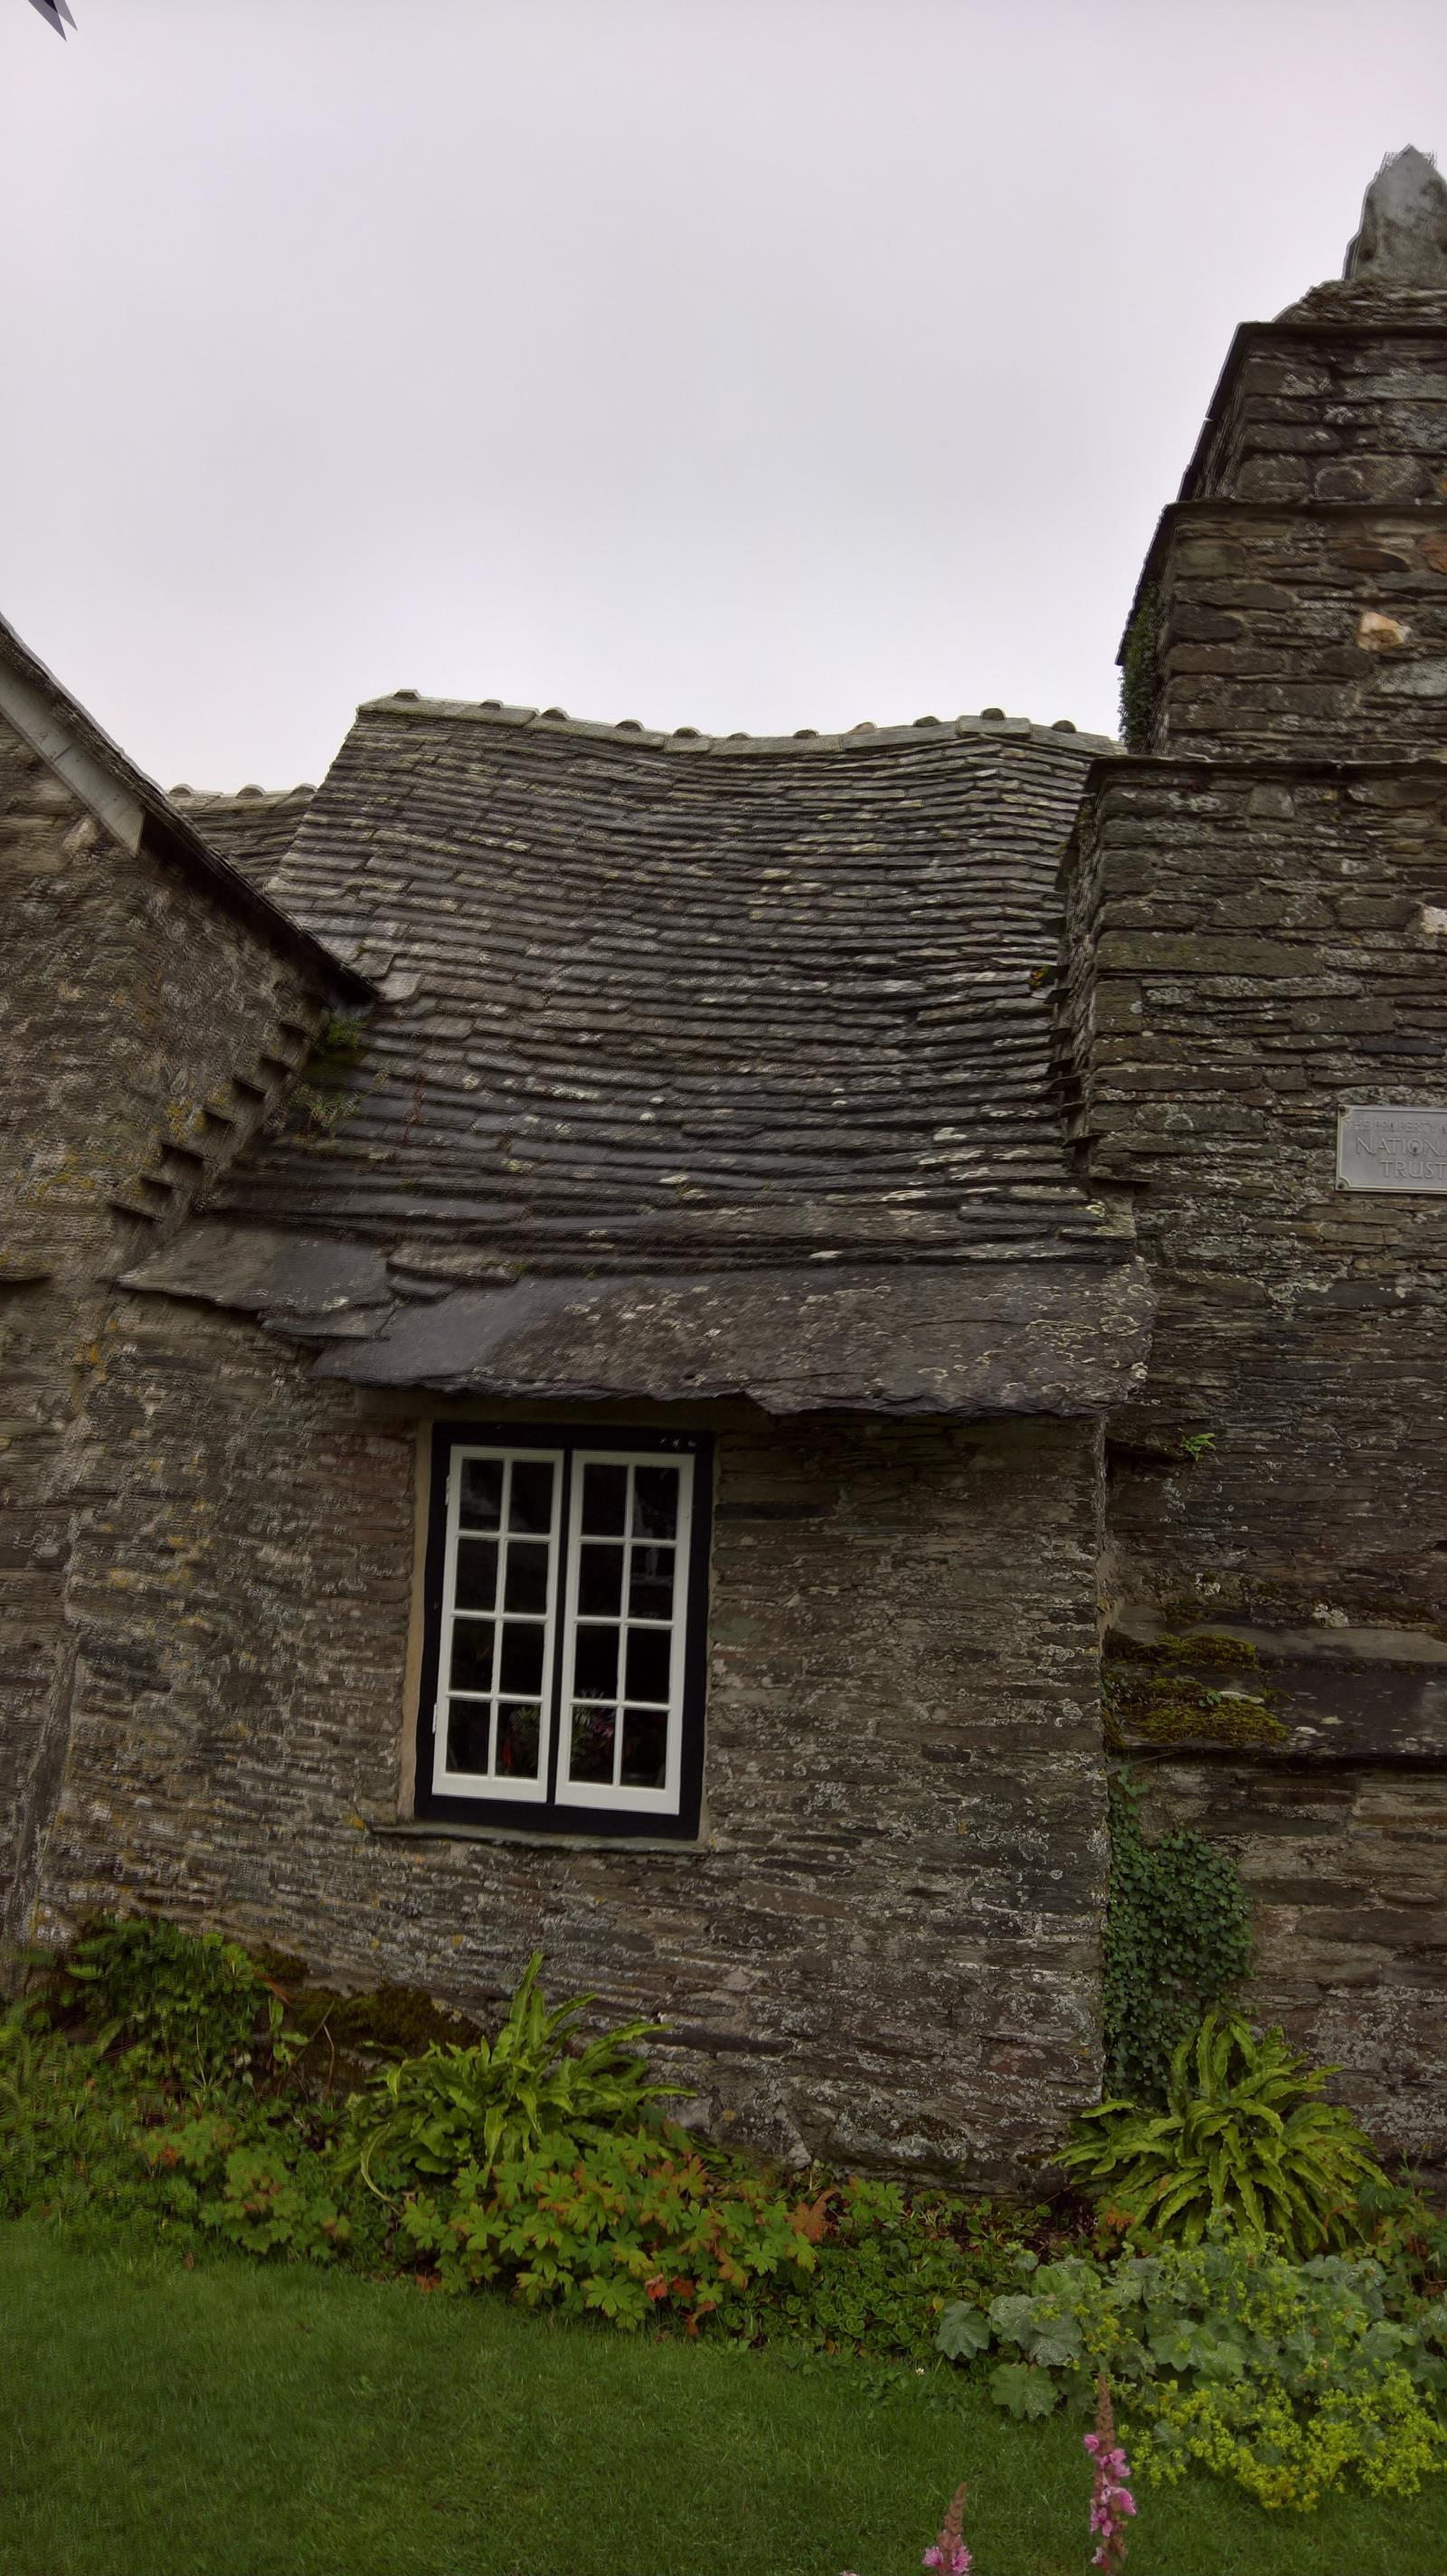 stone roof repairs might be needed.